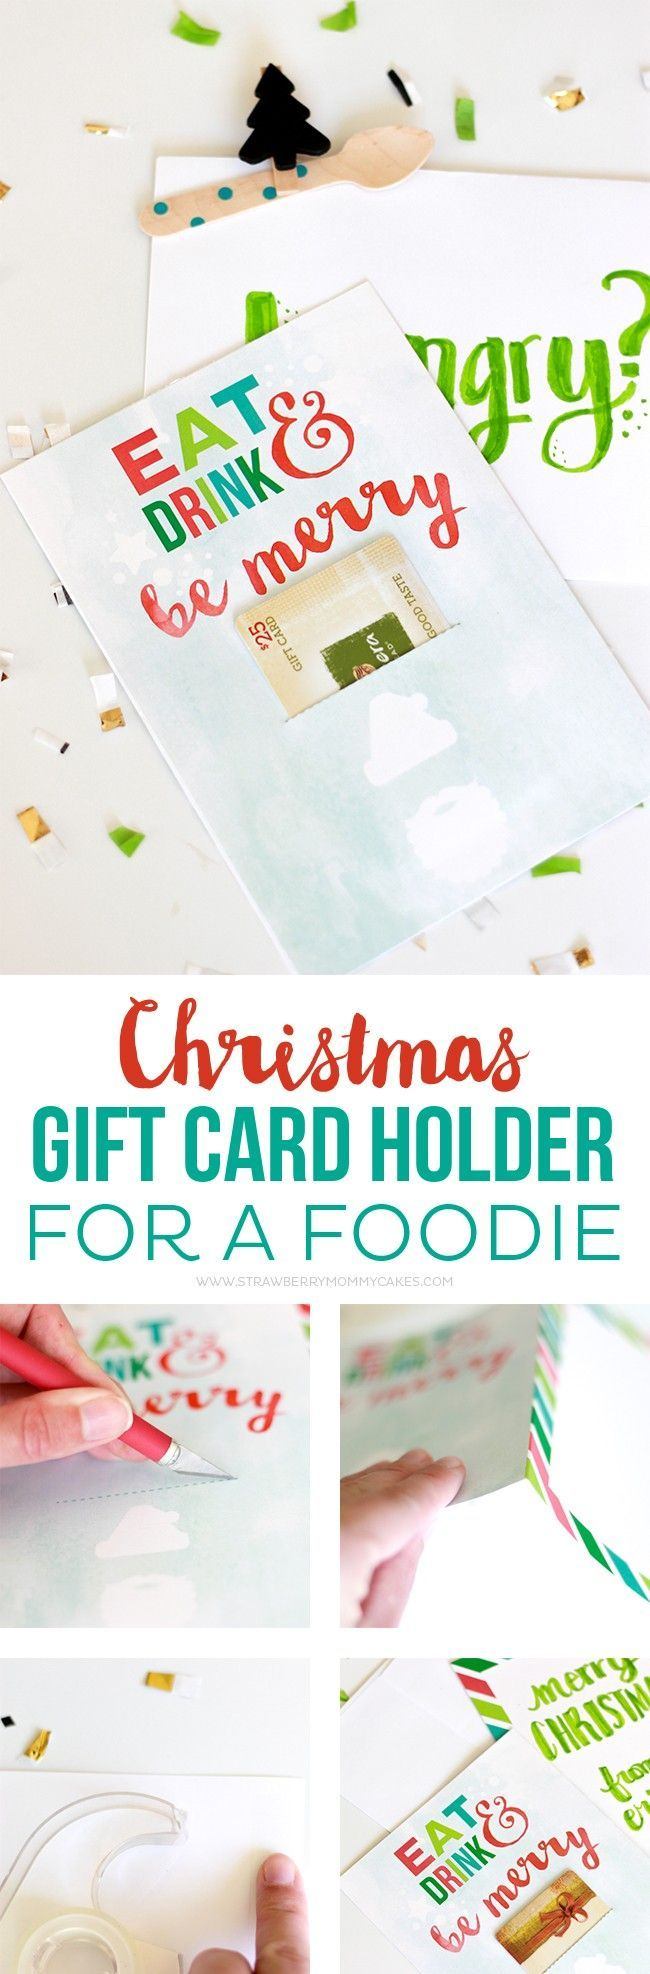 How To Make A Christmas Gift Card Holder For A Foodie